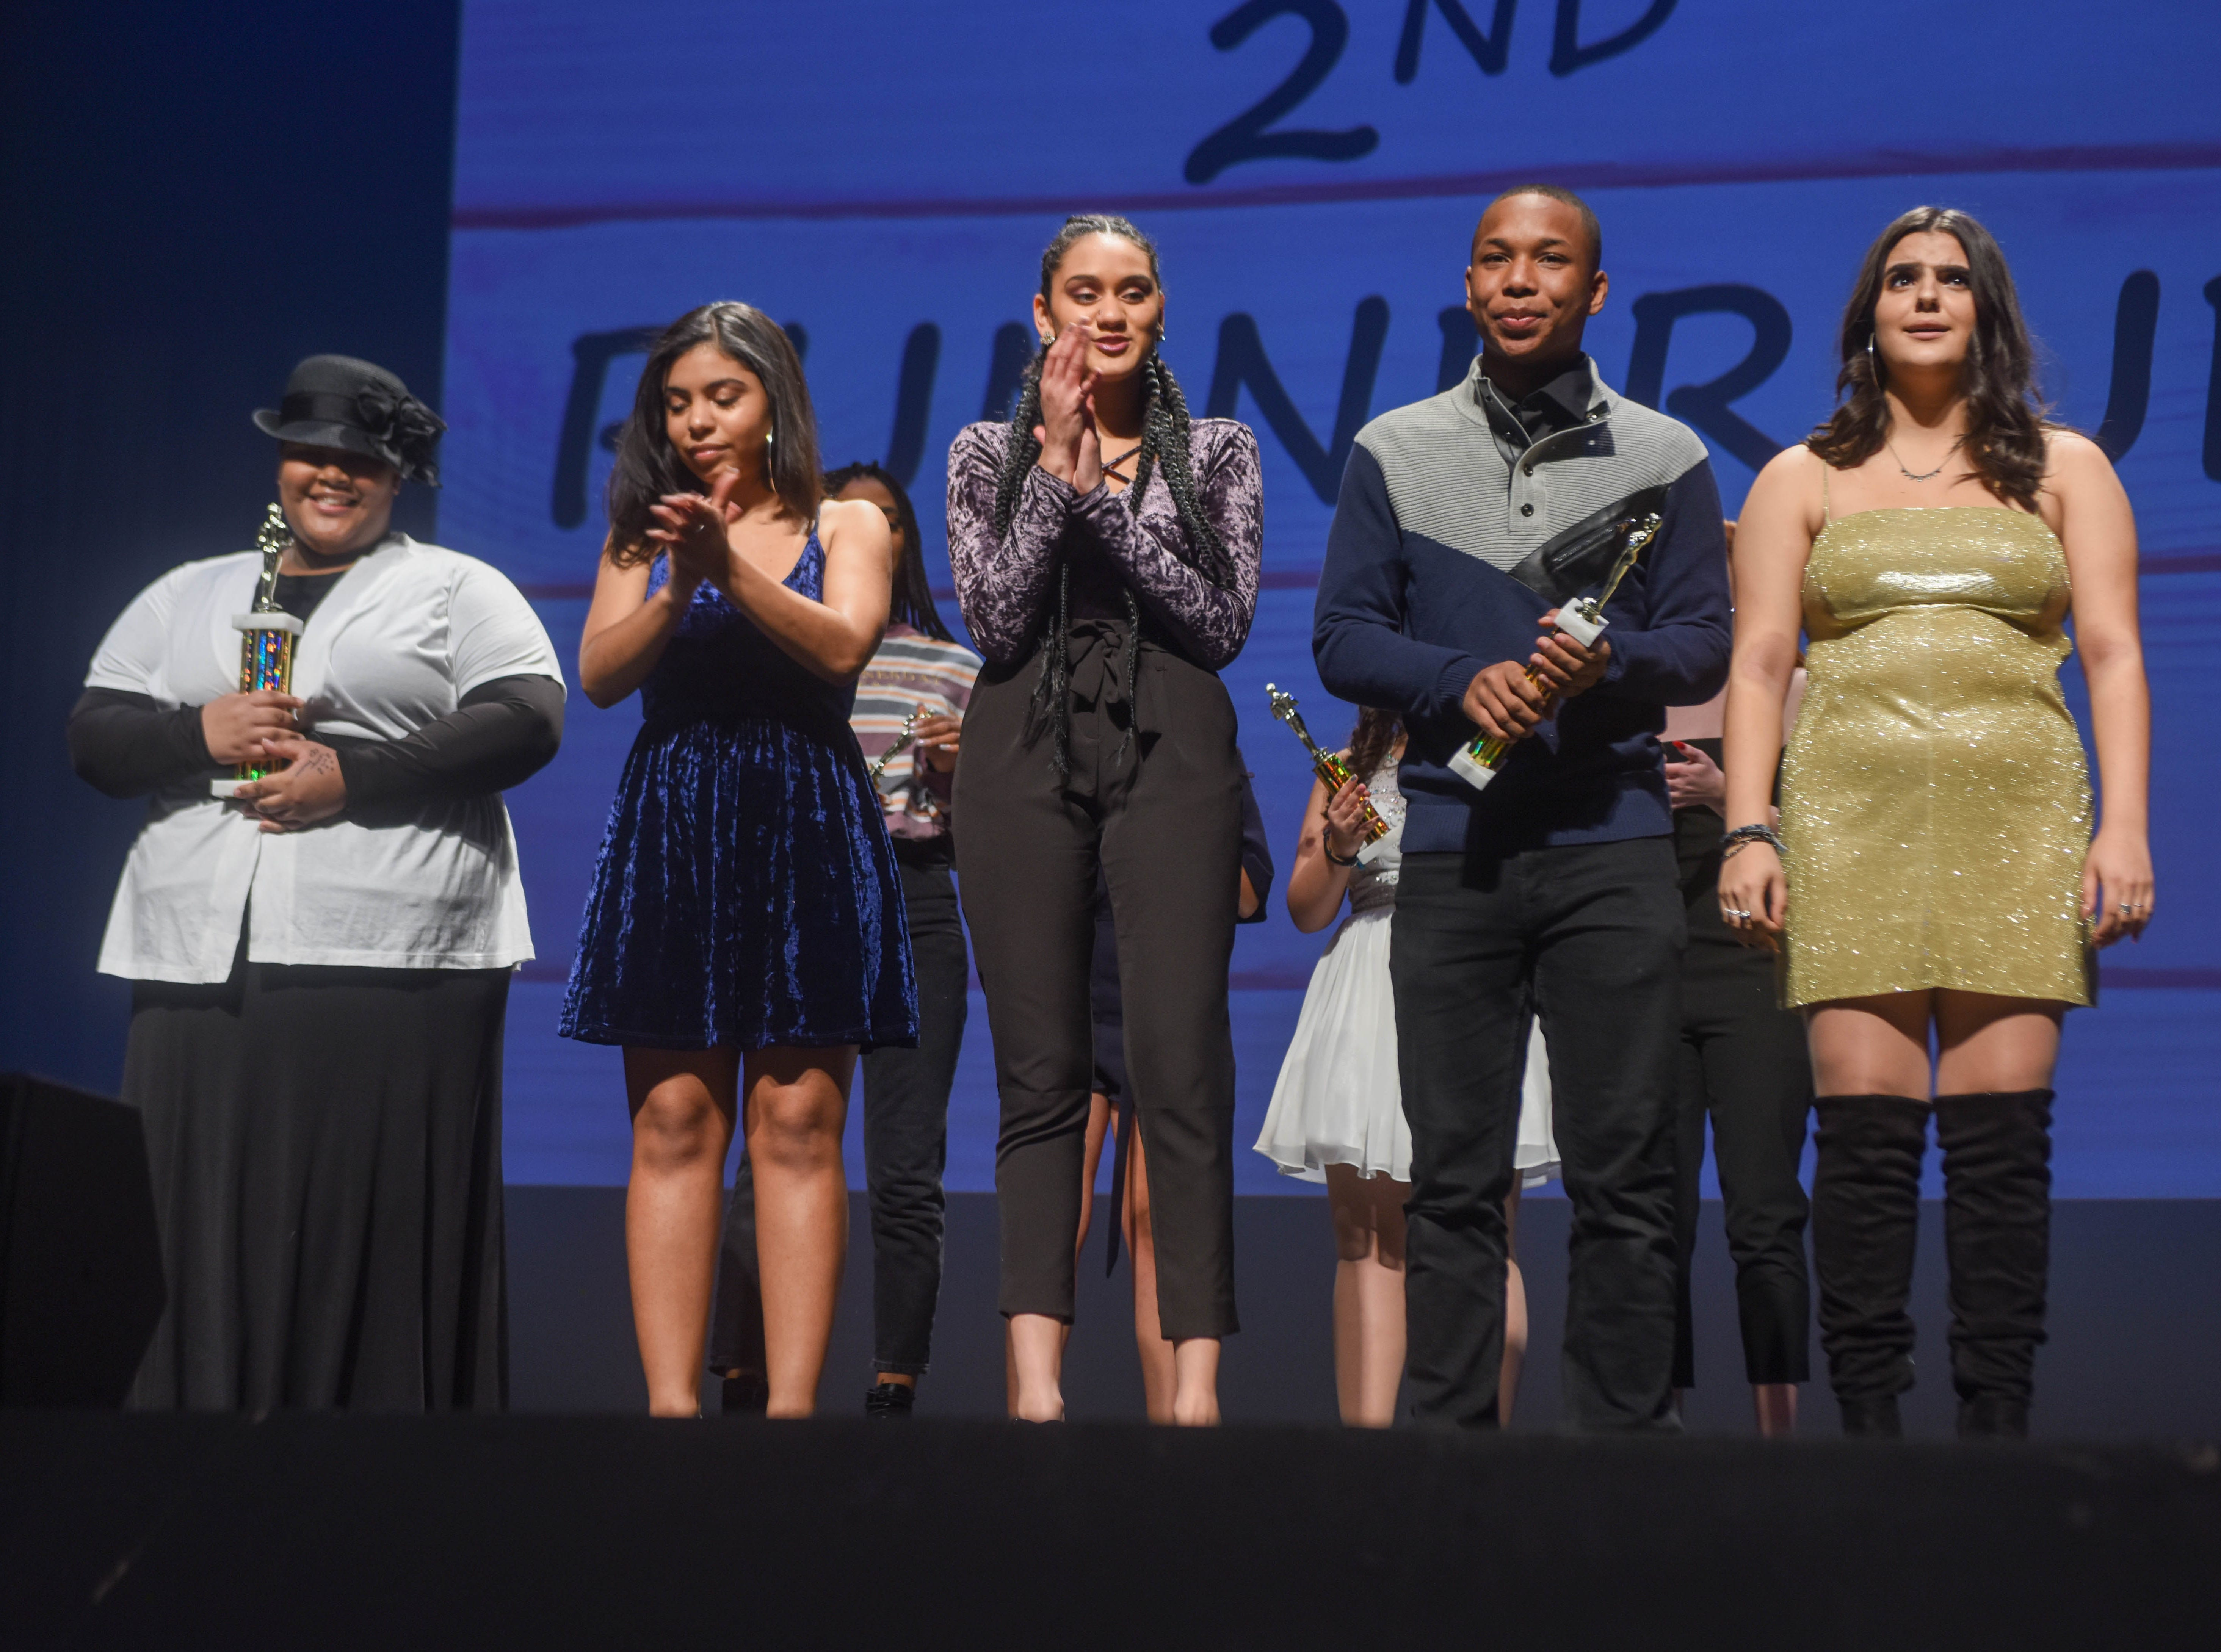 The Top Five Finalist - Lamyra Newton, Patricia Parker, Genesis Capellan, Auhjen Upshaw and Lena Graf. The 2019 Englewood Idol was held at bergenPAC theater. The singing competition is open to any high school student who currently lives or goes to school in Englewood, NJ. This years winner was Genesis Capellan. 01/11/2019